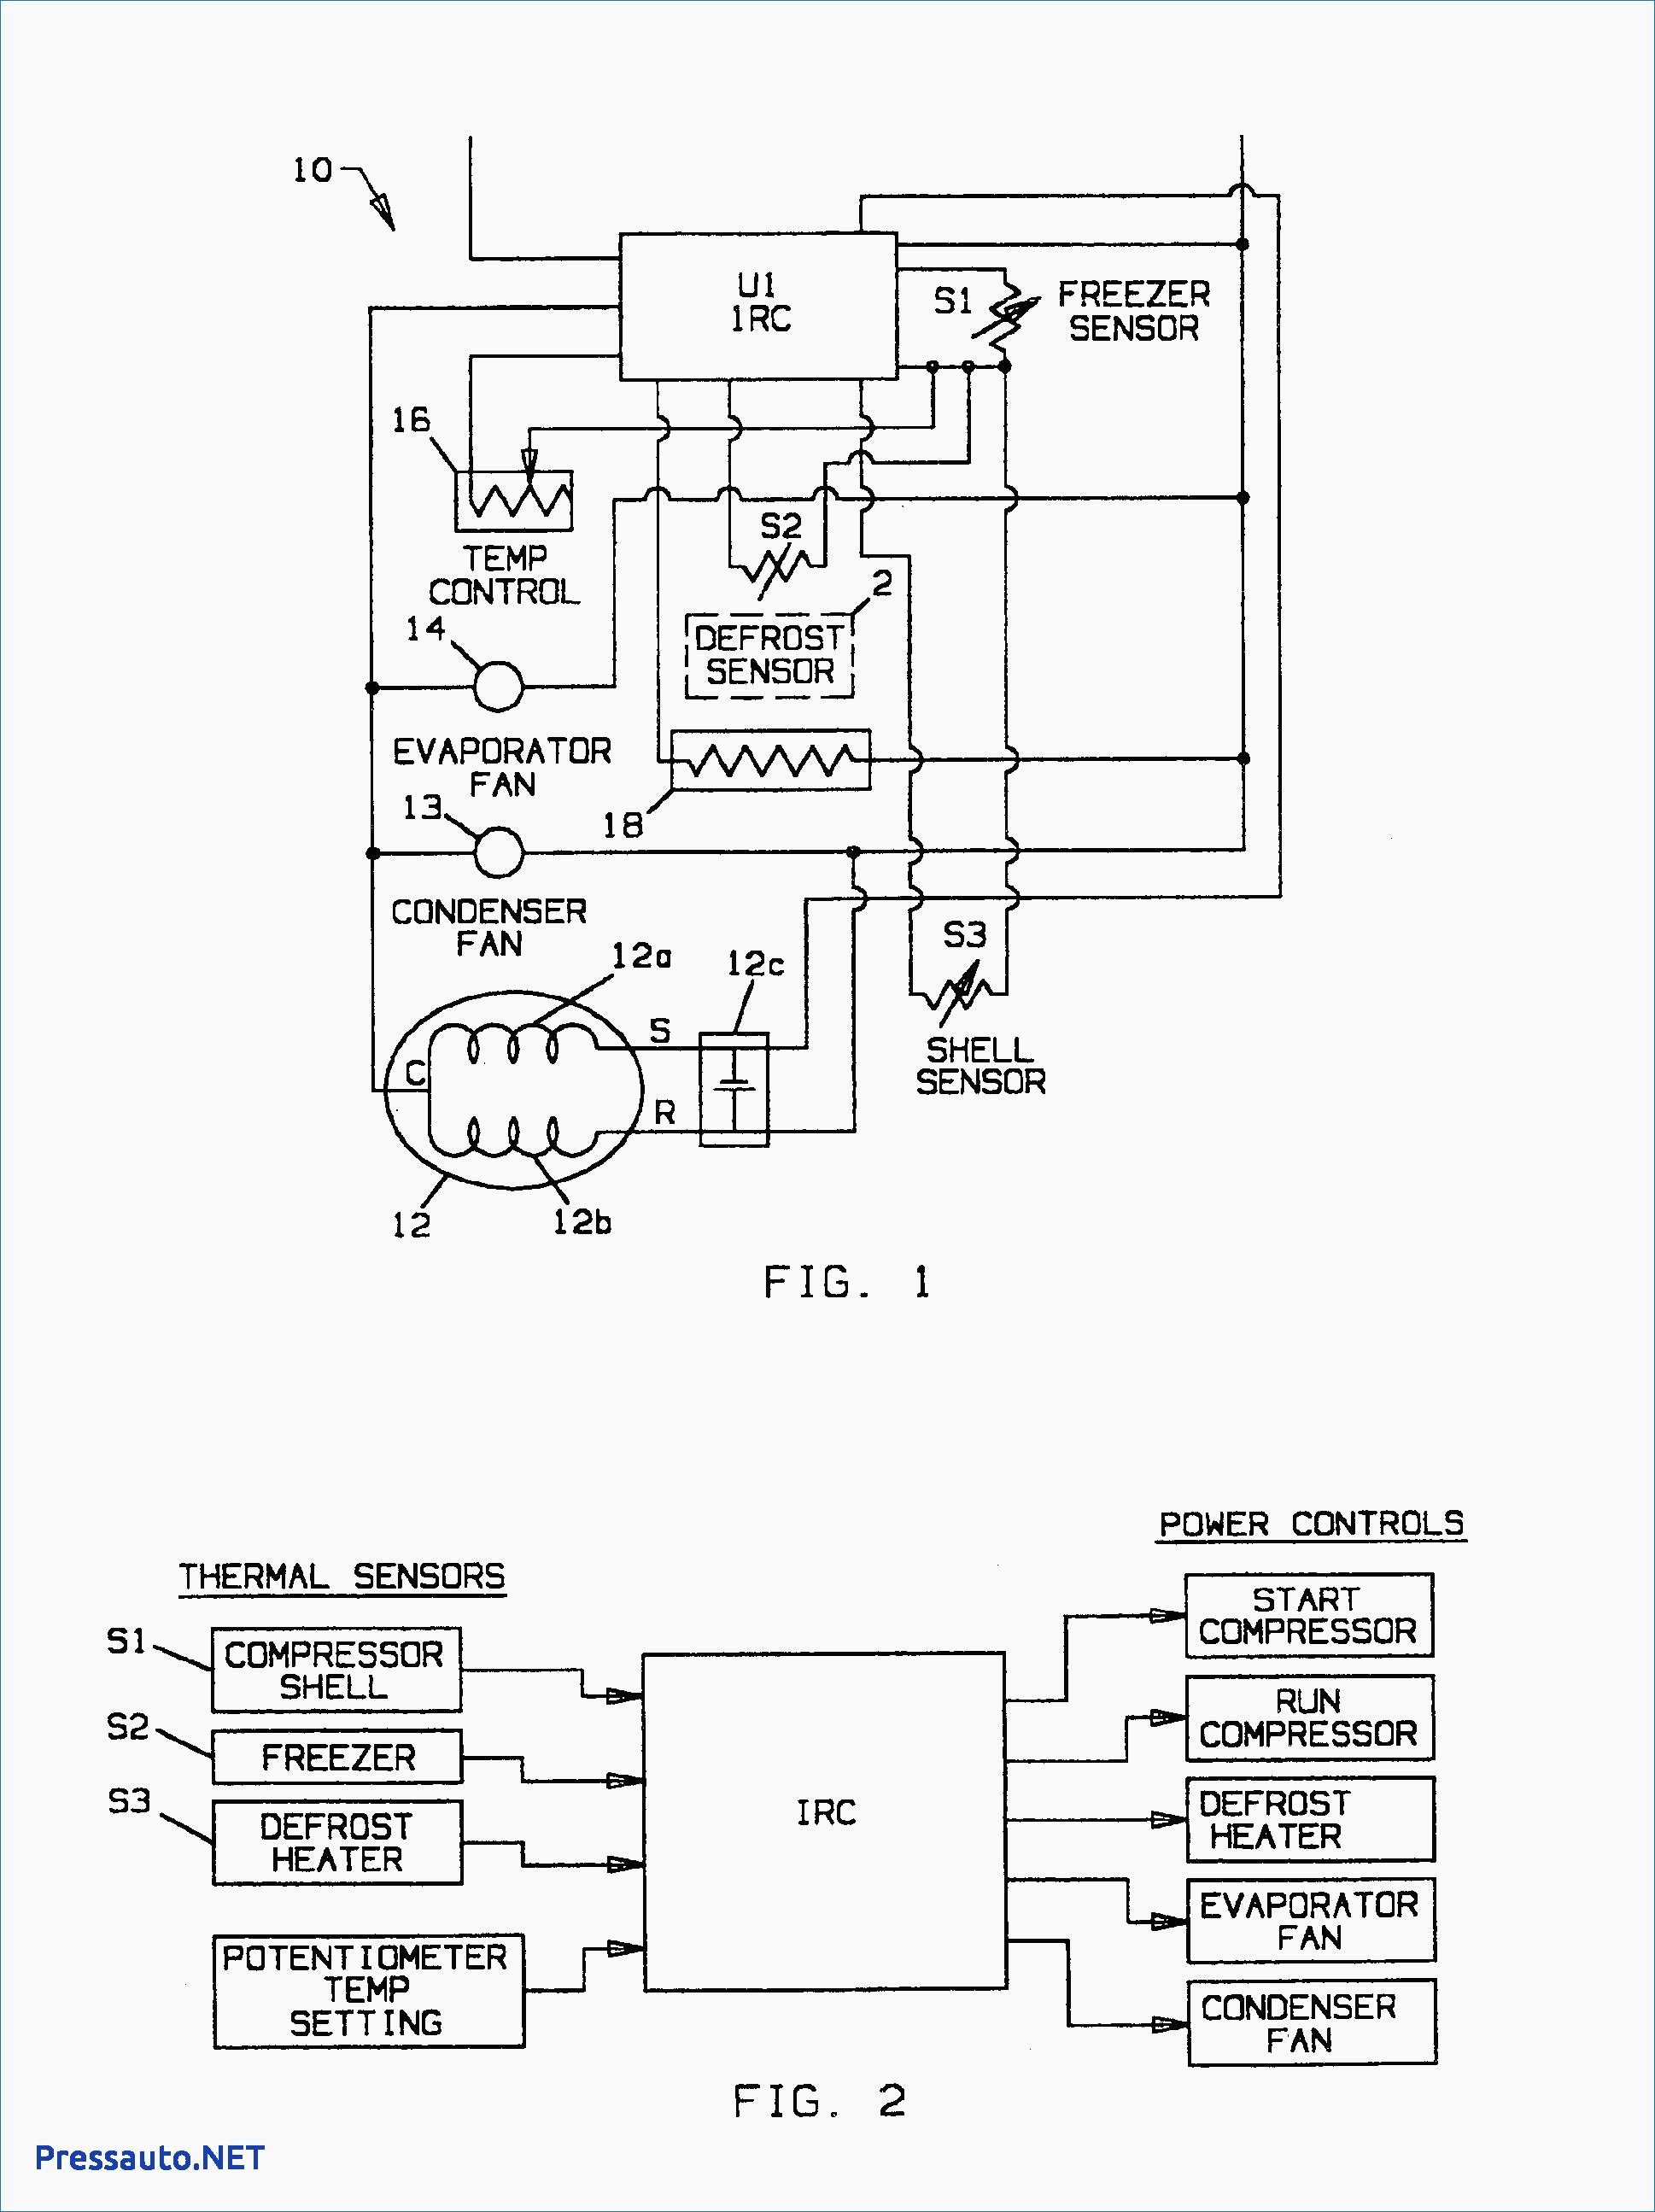 russell evaporator wiring diagram Download-Walk In Freezer Wiring Diagram Inspirational Walk In Freezer Defrost Timer Wiring Diagram Mercial Best for 7-q